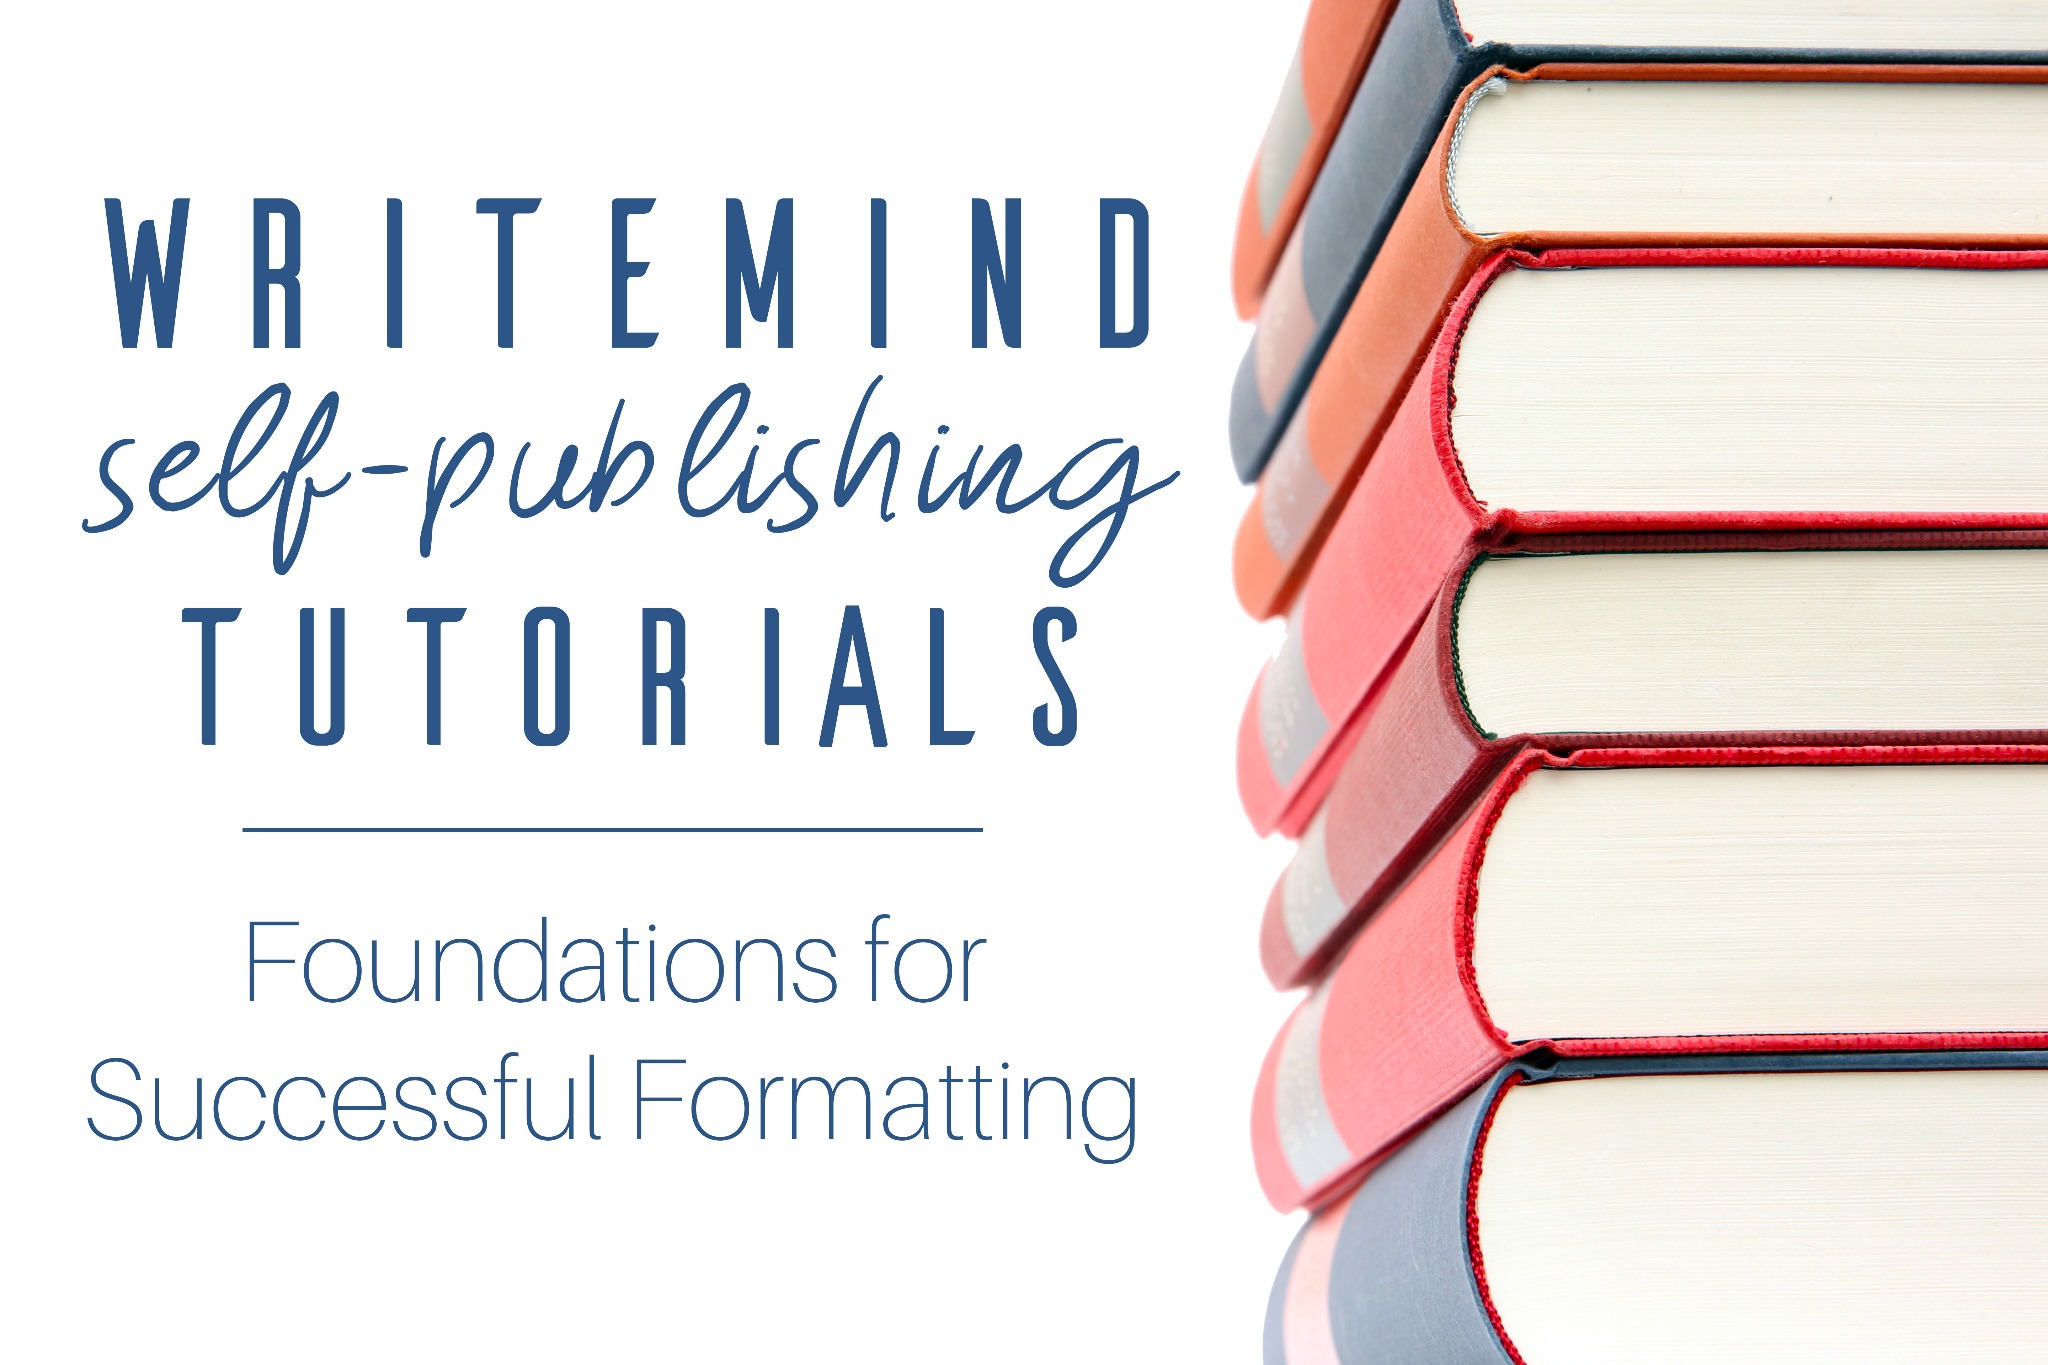 Foundations for Successful Formatting